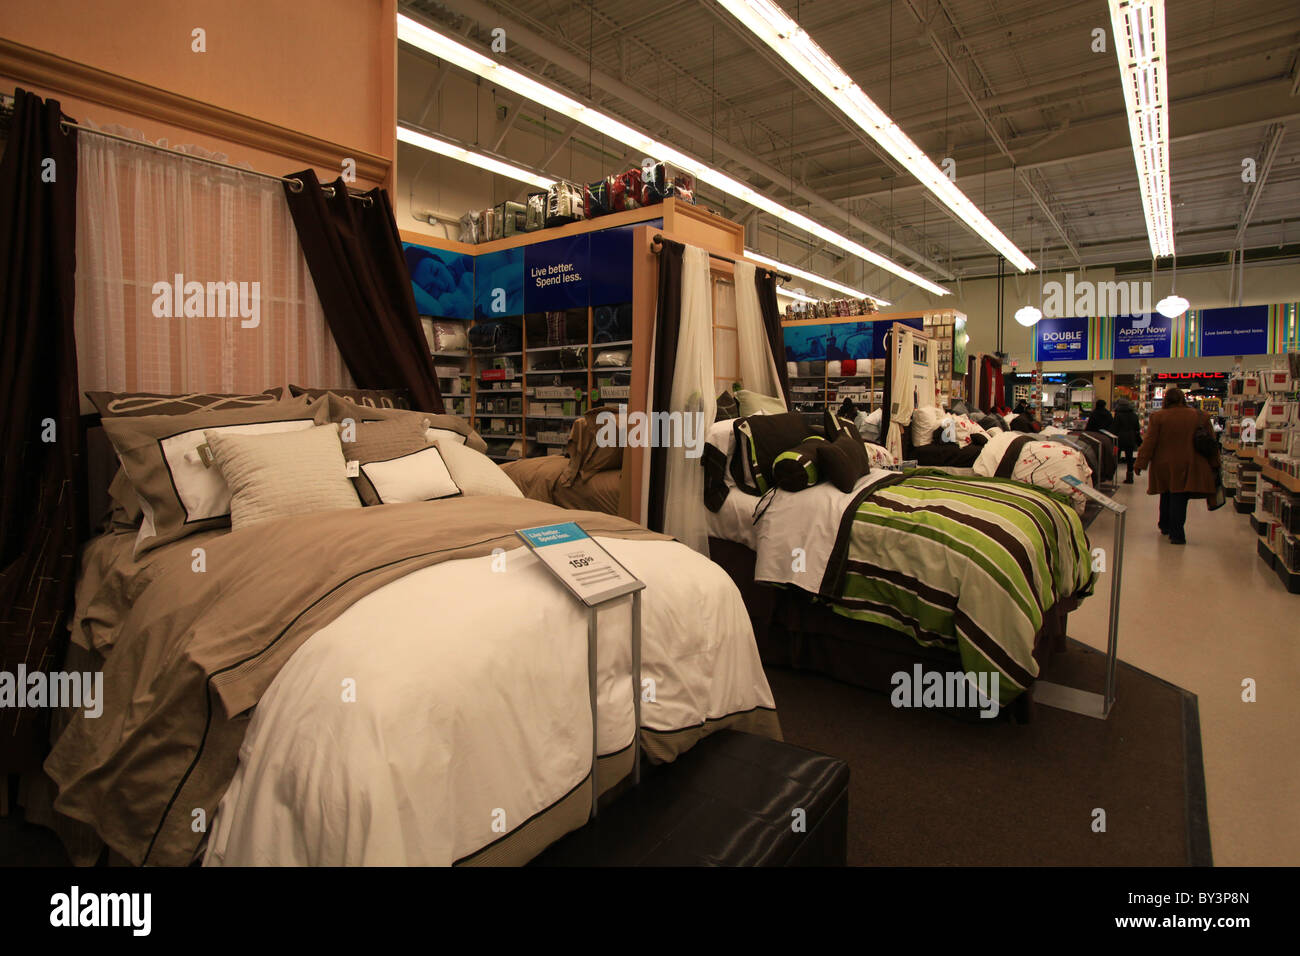 Schlafzimmer Set Outlet Home Outfitters Outlet Store In Stockfotos Home Outfitters